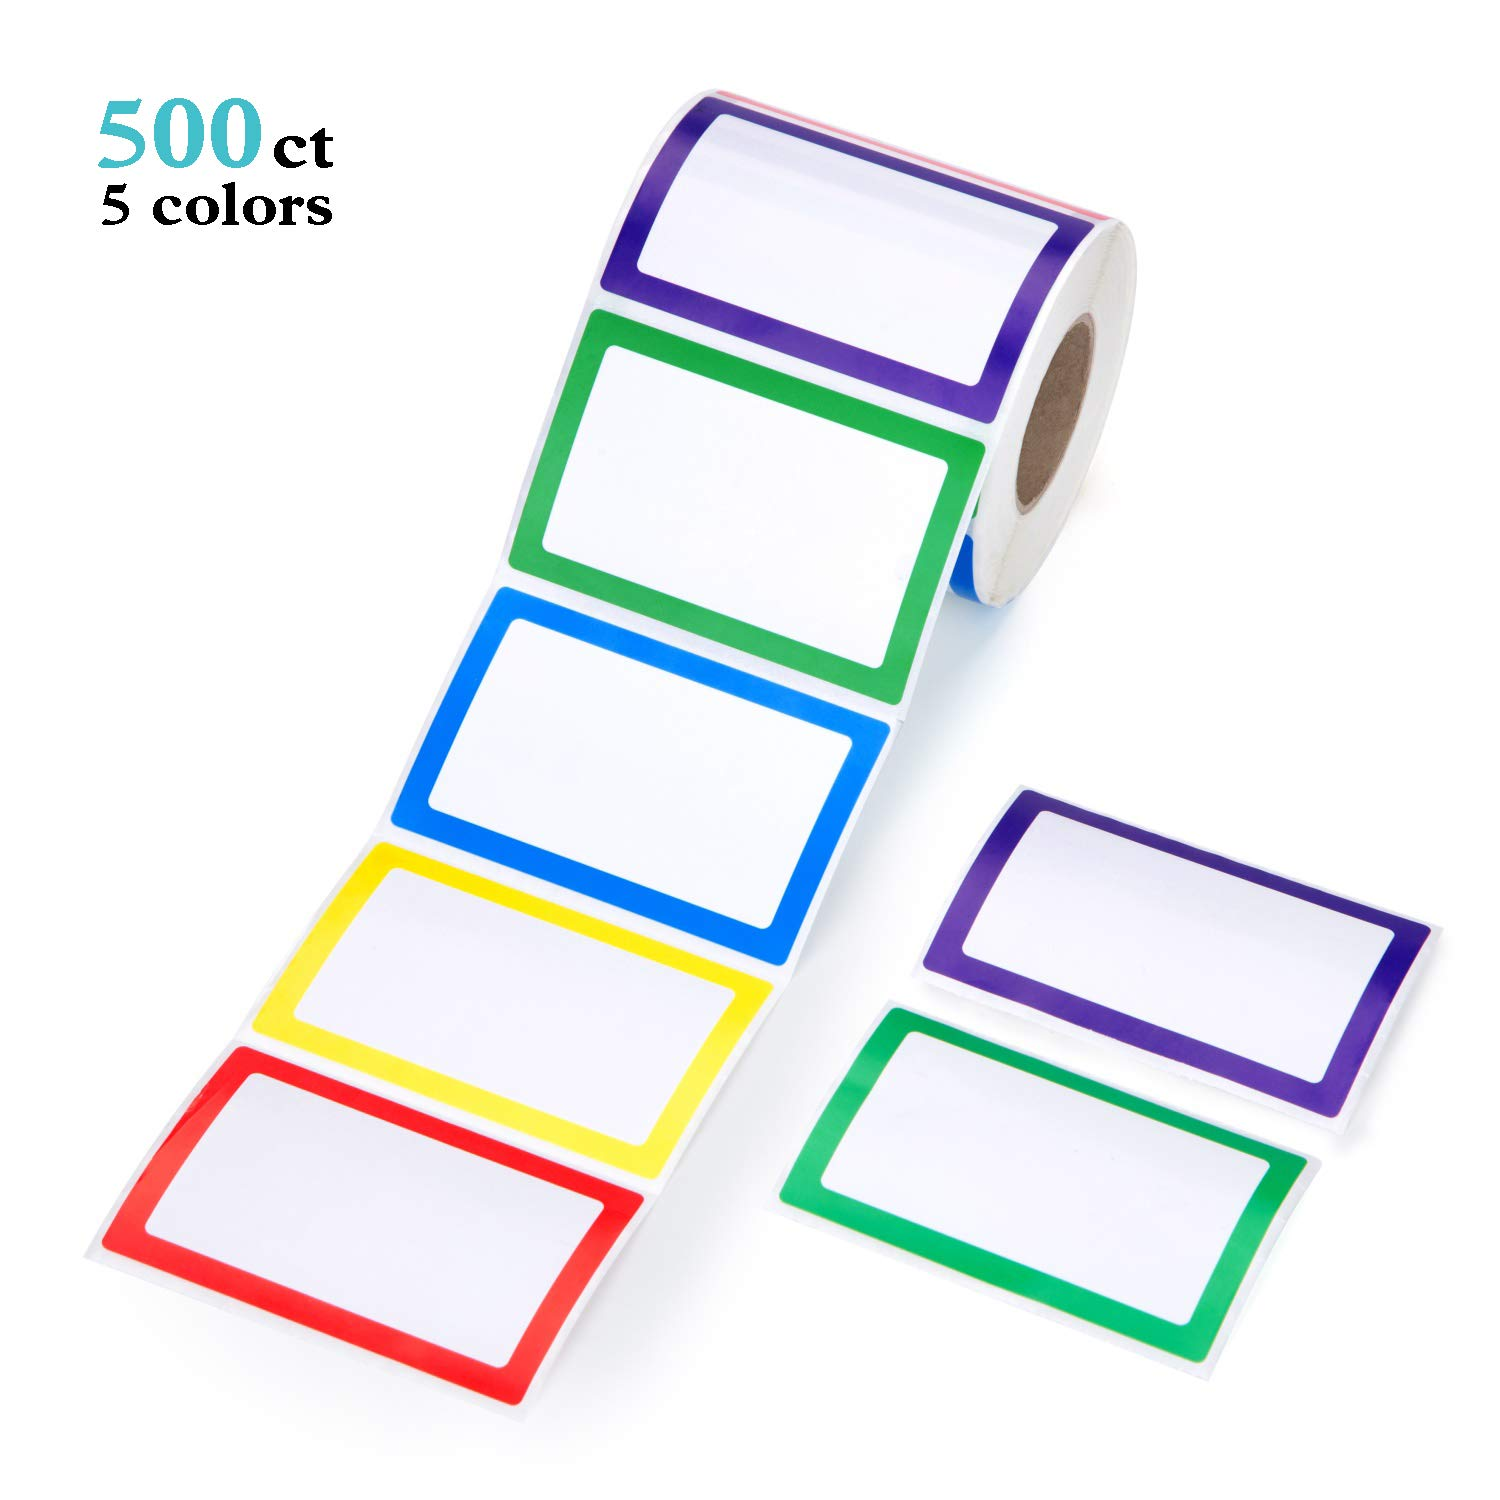 Kindergarten Meeting Mionno 5 Colors Adhesive Name Tag Labels 500pc 3.5 x2.25 Plain Name Tag Stickers//Category Tags for Office School Warehouses and Mailing Teachers Parties